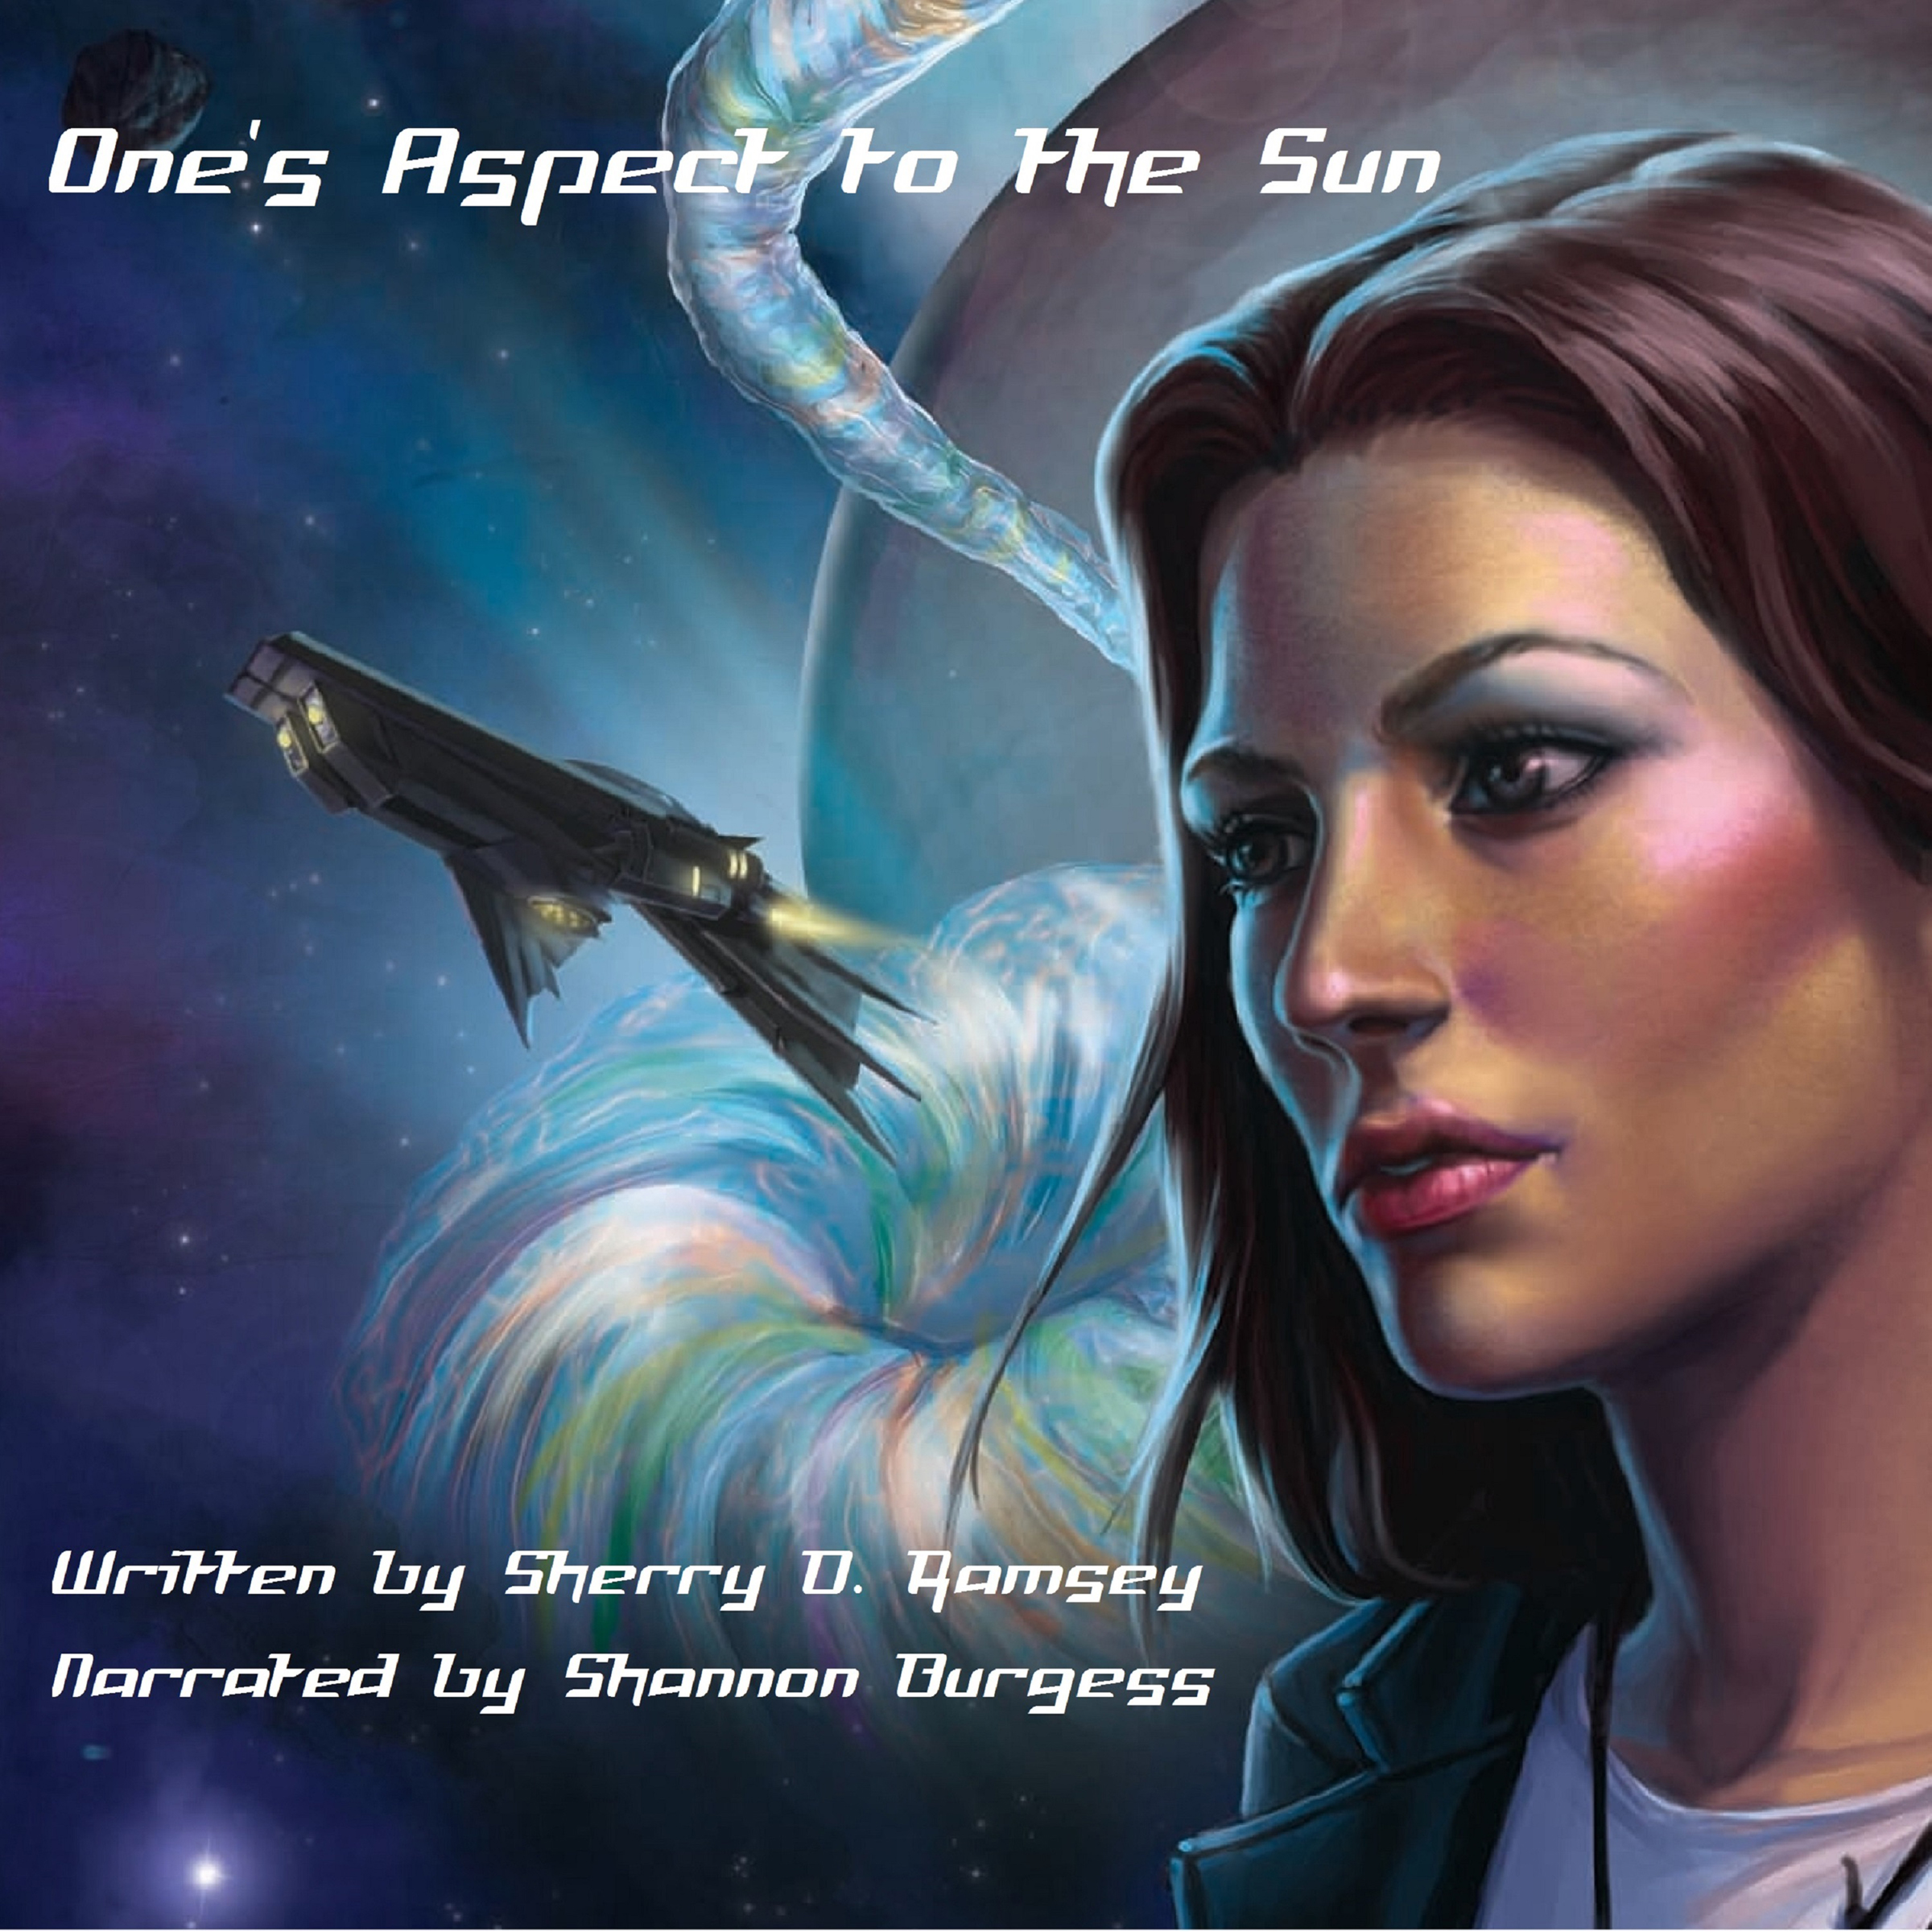 One's Aspect to the Sun cover image